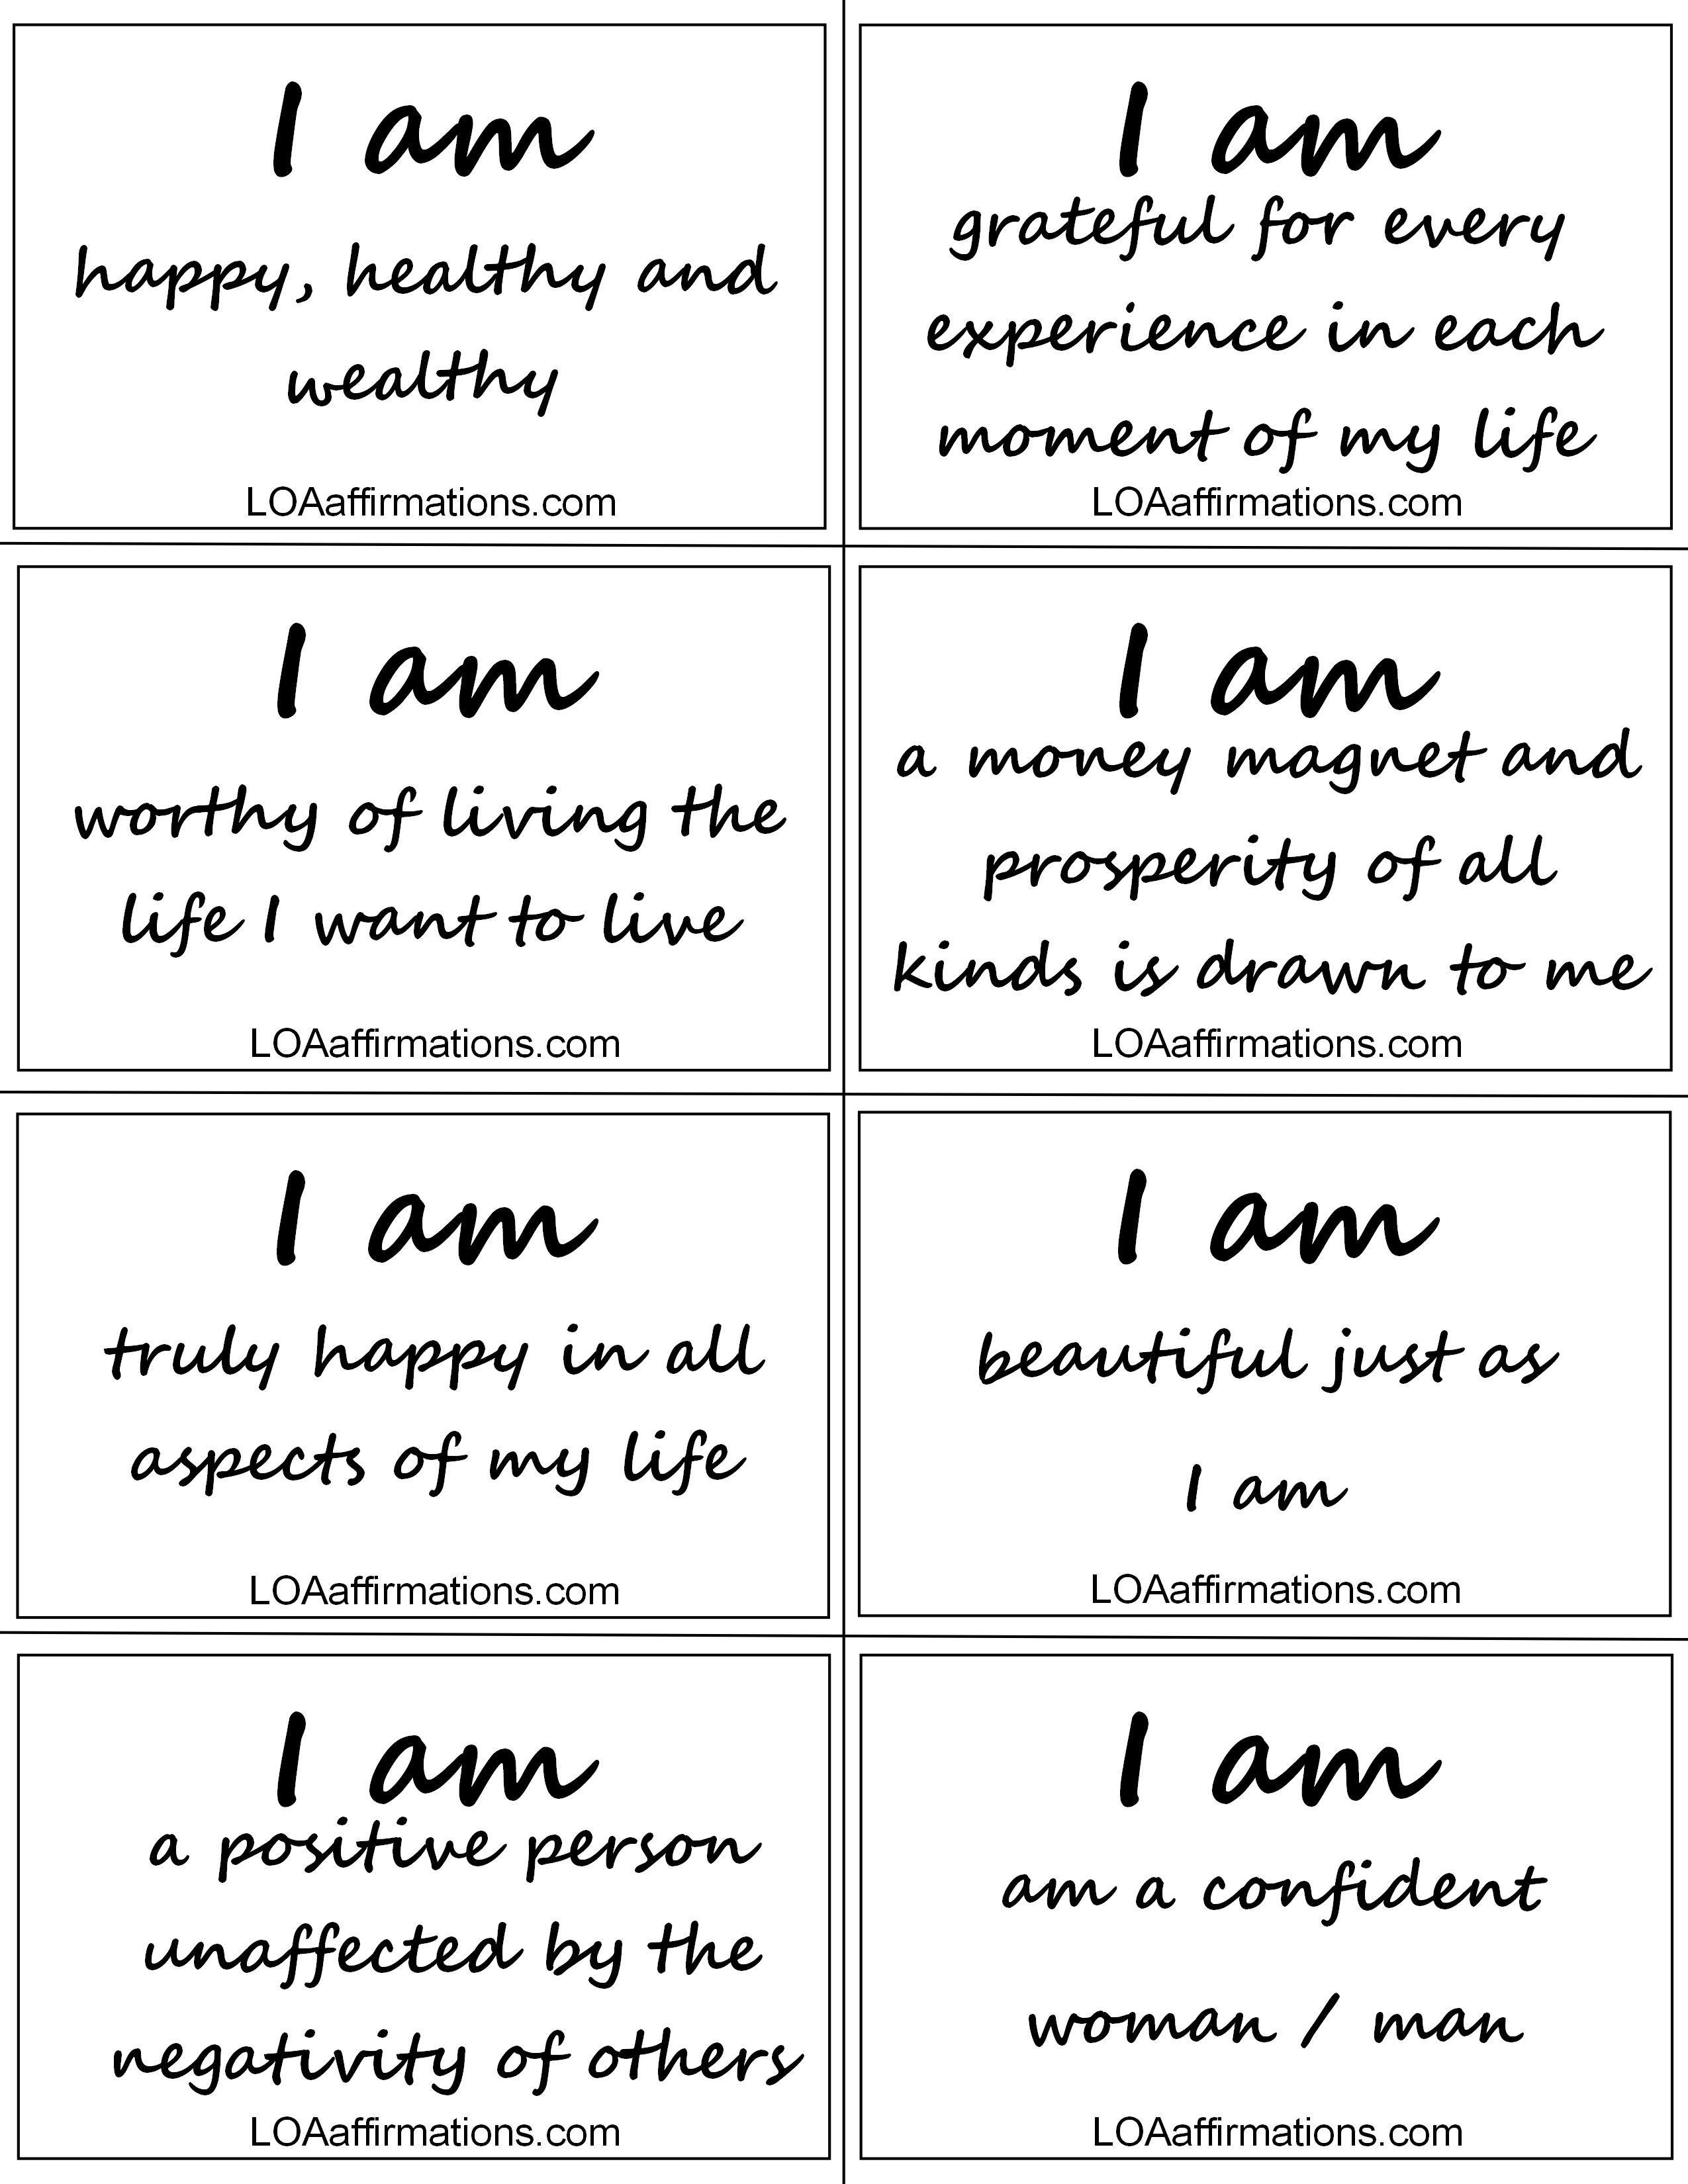 Exciting News Our Newest Program Titled I Am Happy Healthy Wealth Is Nearing Completion And I M Very Daily Affirmations Affirmations I Am Affirmations